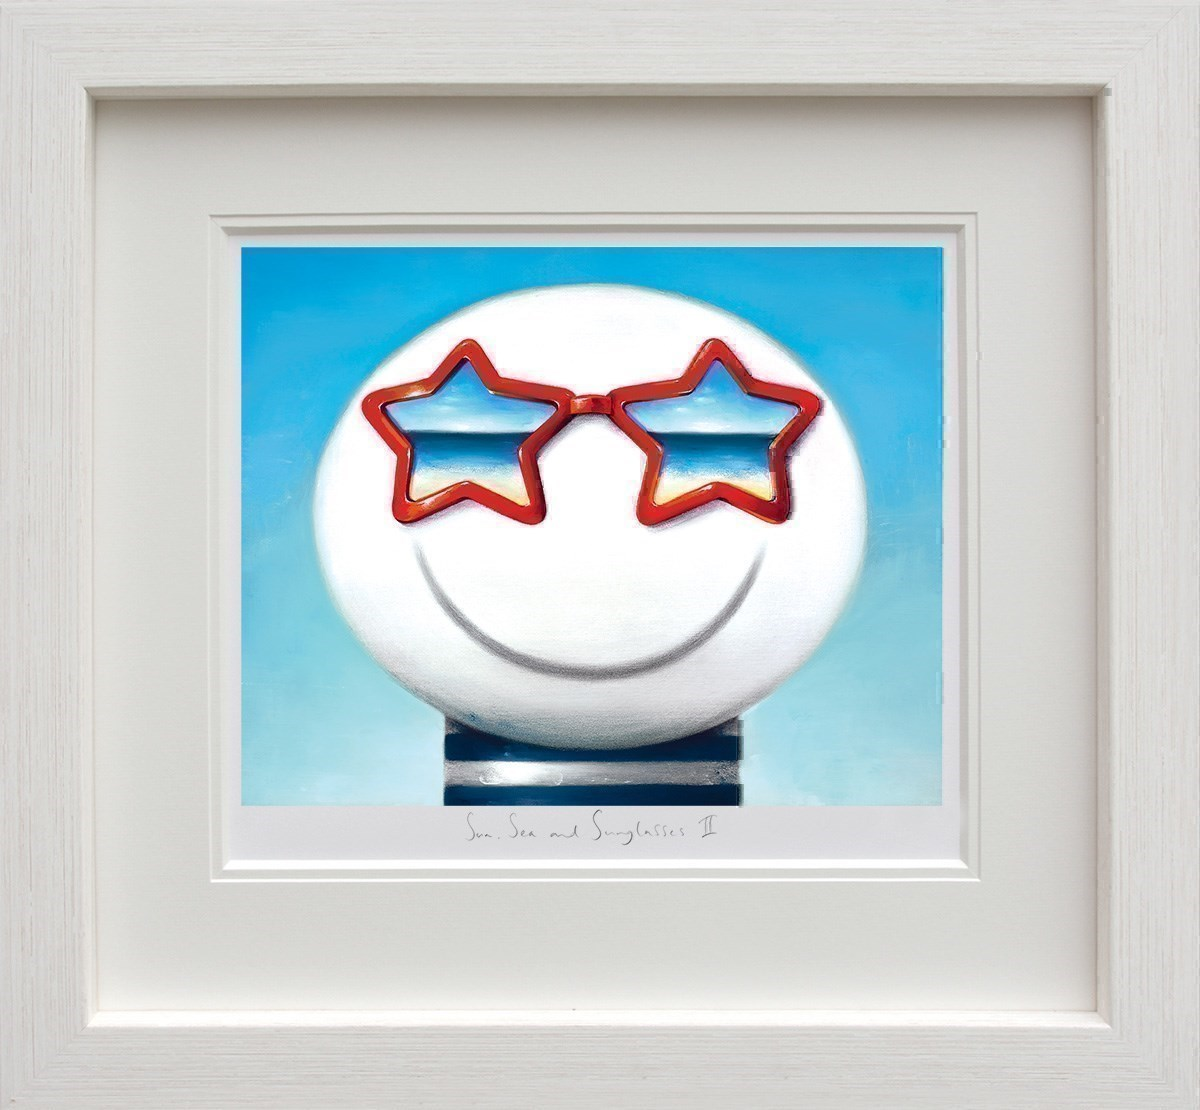 Sun Sea And Sunglasses II by Doug Hyde - Limited Edition on Paper sized 14x11 inches. Available from Whitewall Galleries